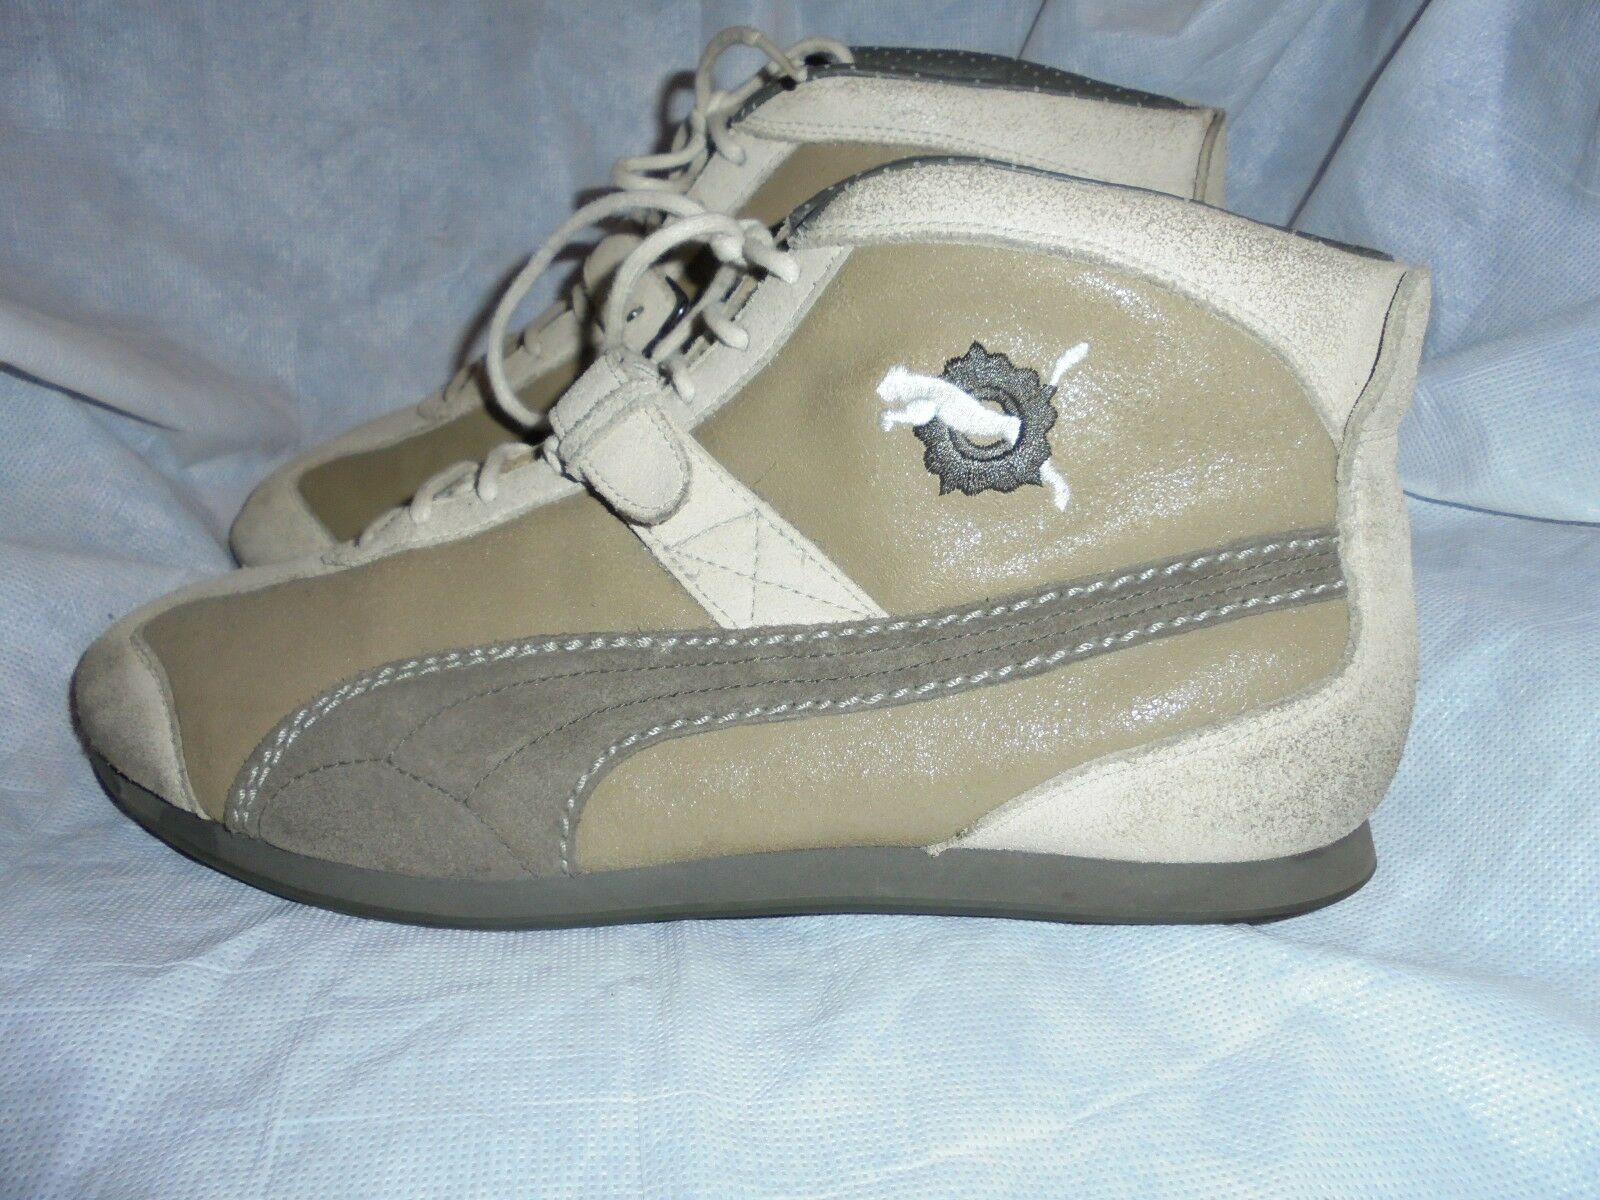 PUMA MEN LIGHT OLIVE LEATHER LACE UP ANKLE TRAINERS SIZE UK 11 EU 46 US 12 VGC